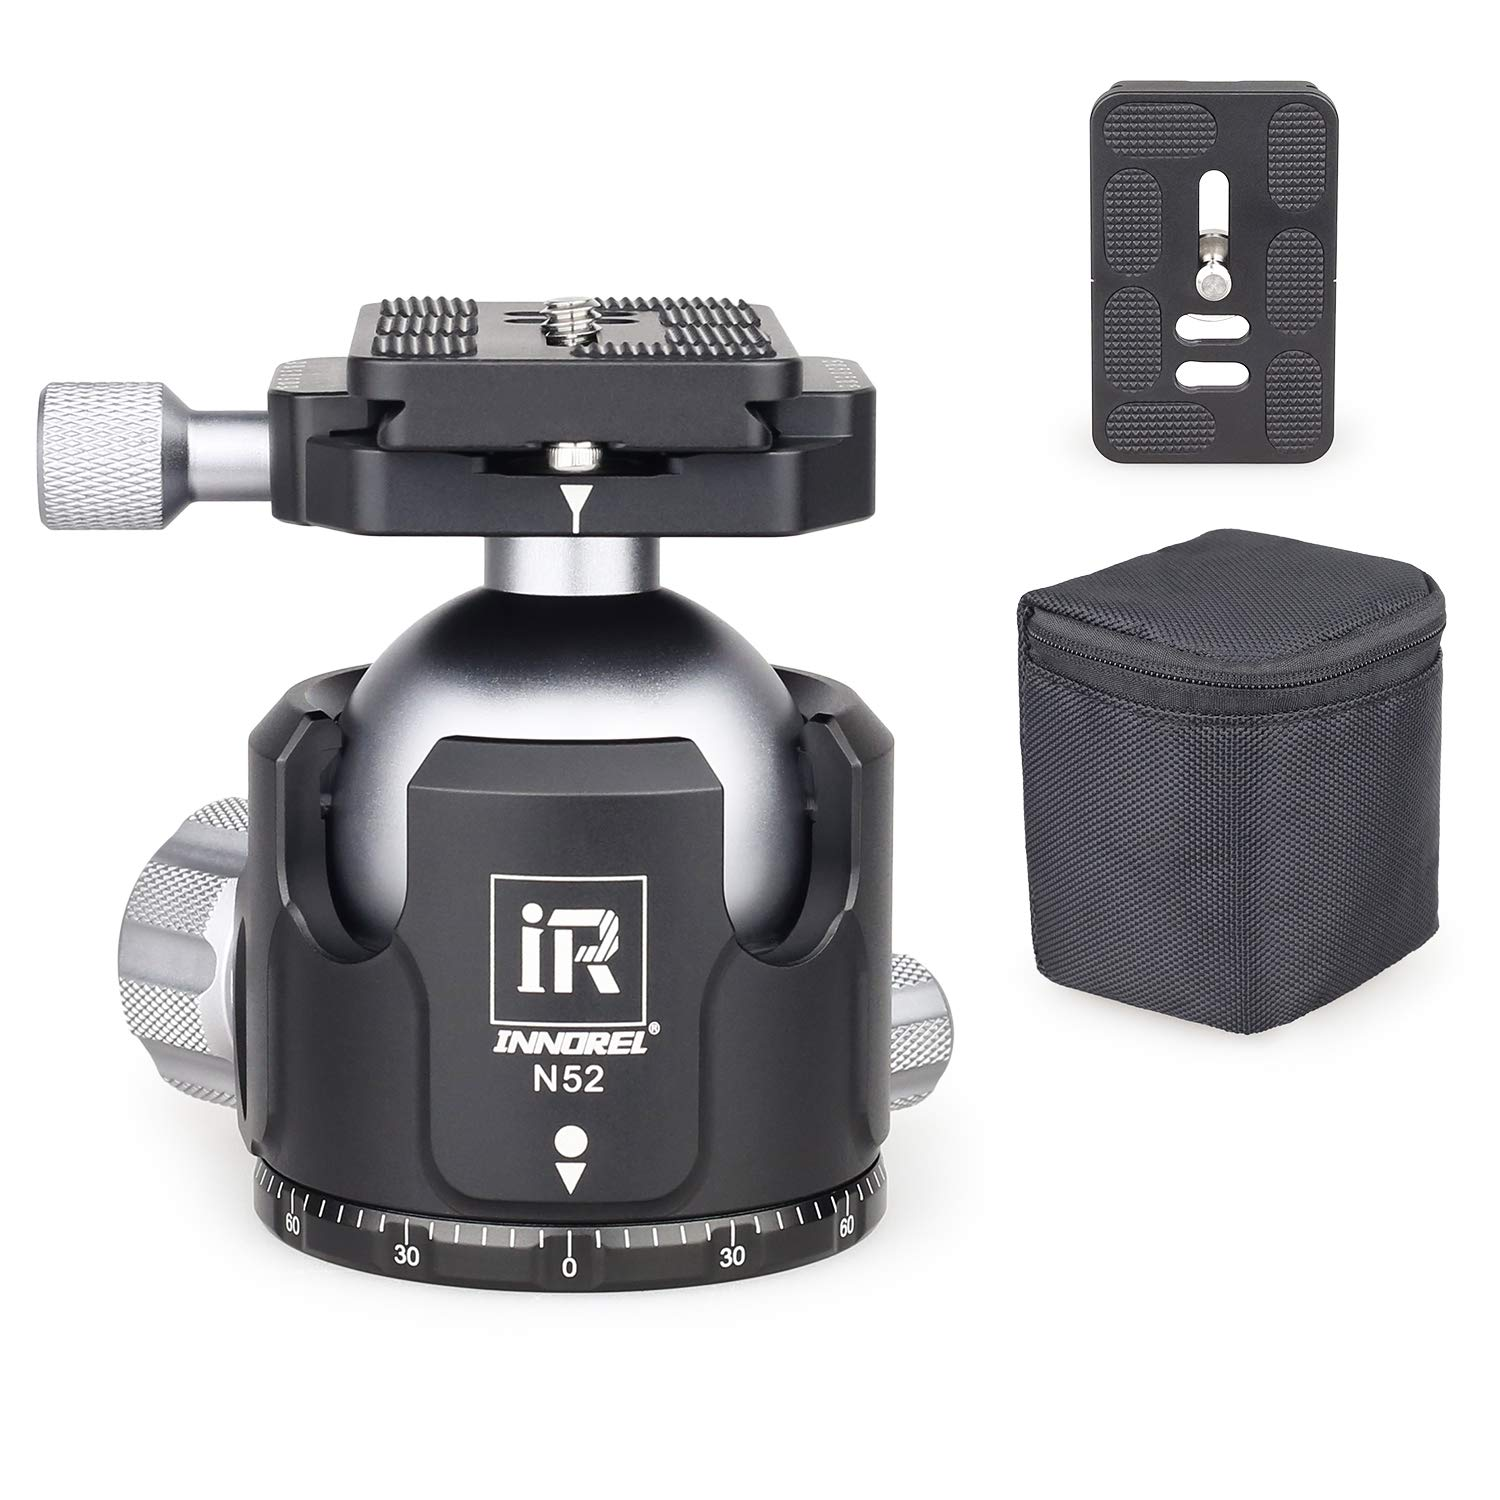 Low Profile Ball Head Metal Tripod Ball Head 52MM Ball Diameter INNOREL N52 Panoramic CNC Ball Heads Camera Mount with Two 1/4'' Quick Release Plates for Tripod, DSLR, Camcorder, Max Load 66lbs/30kg by INNOREL